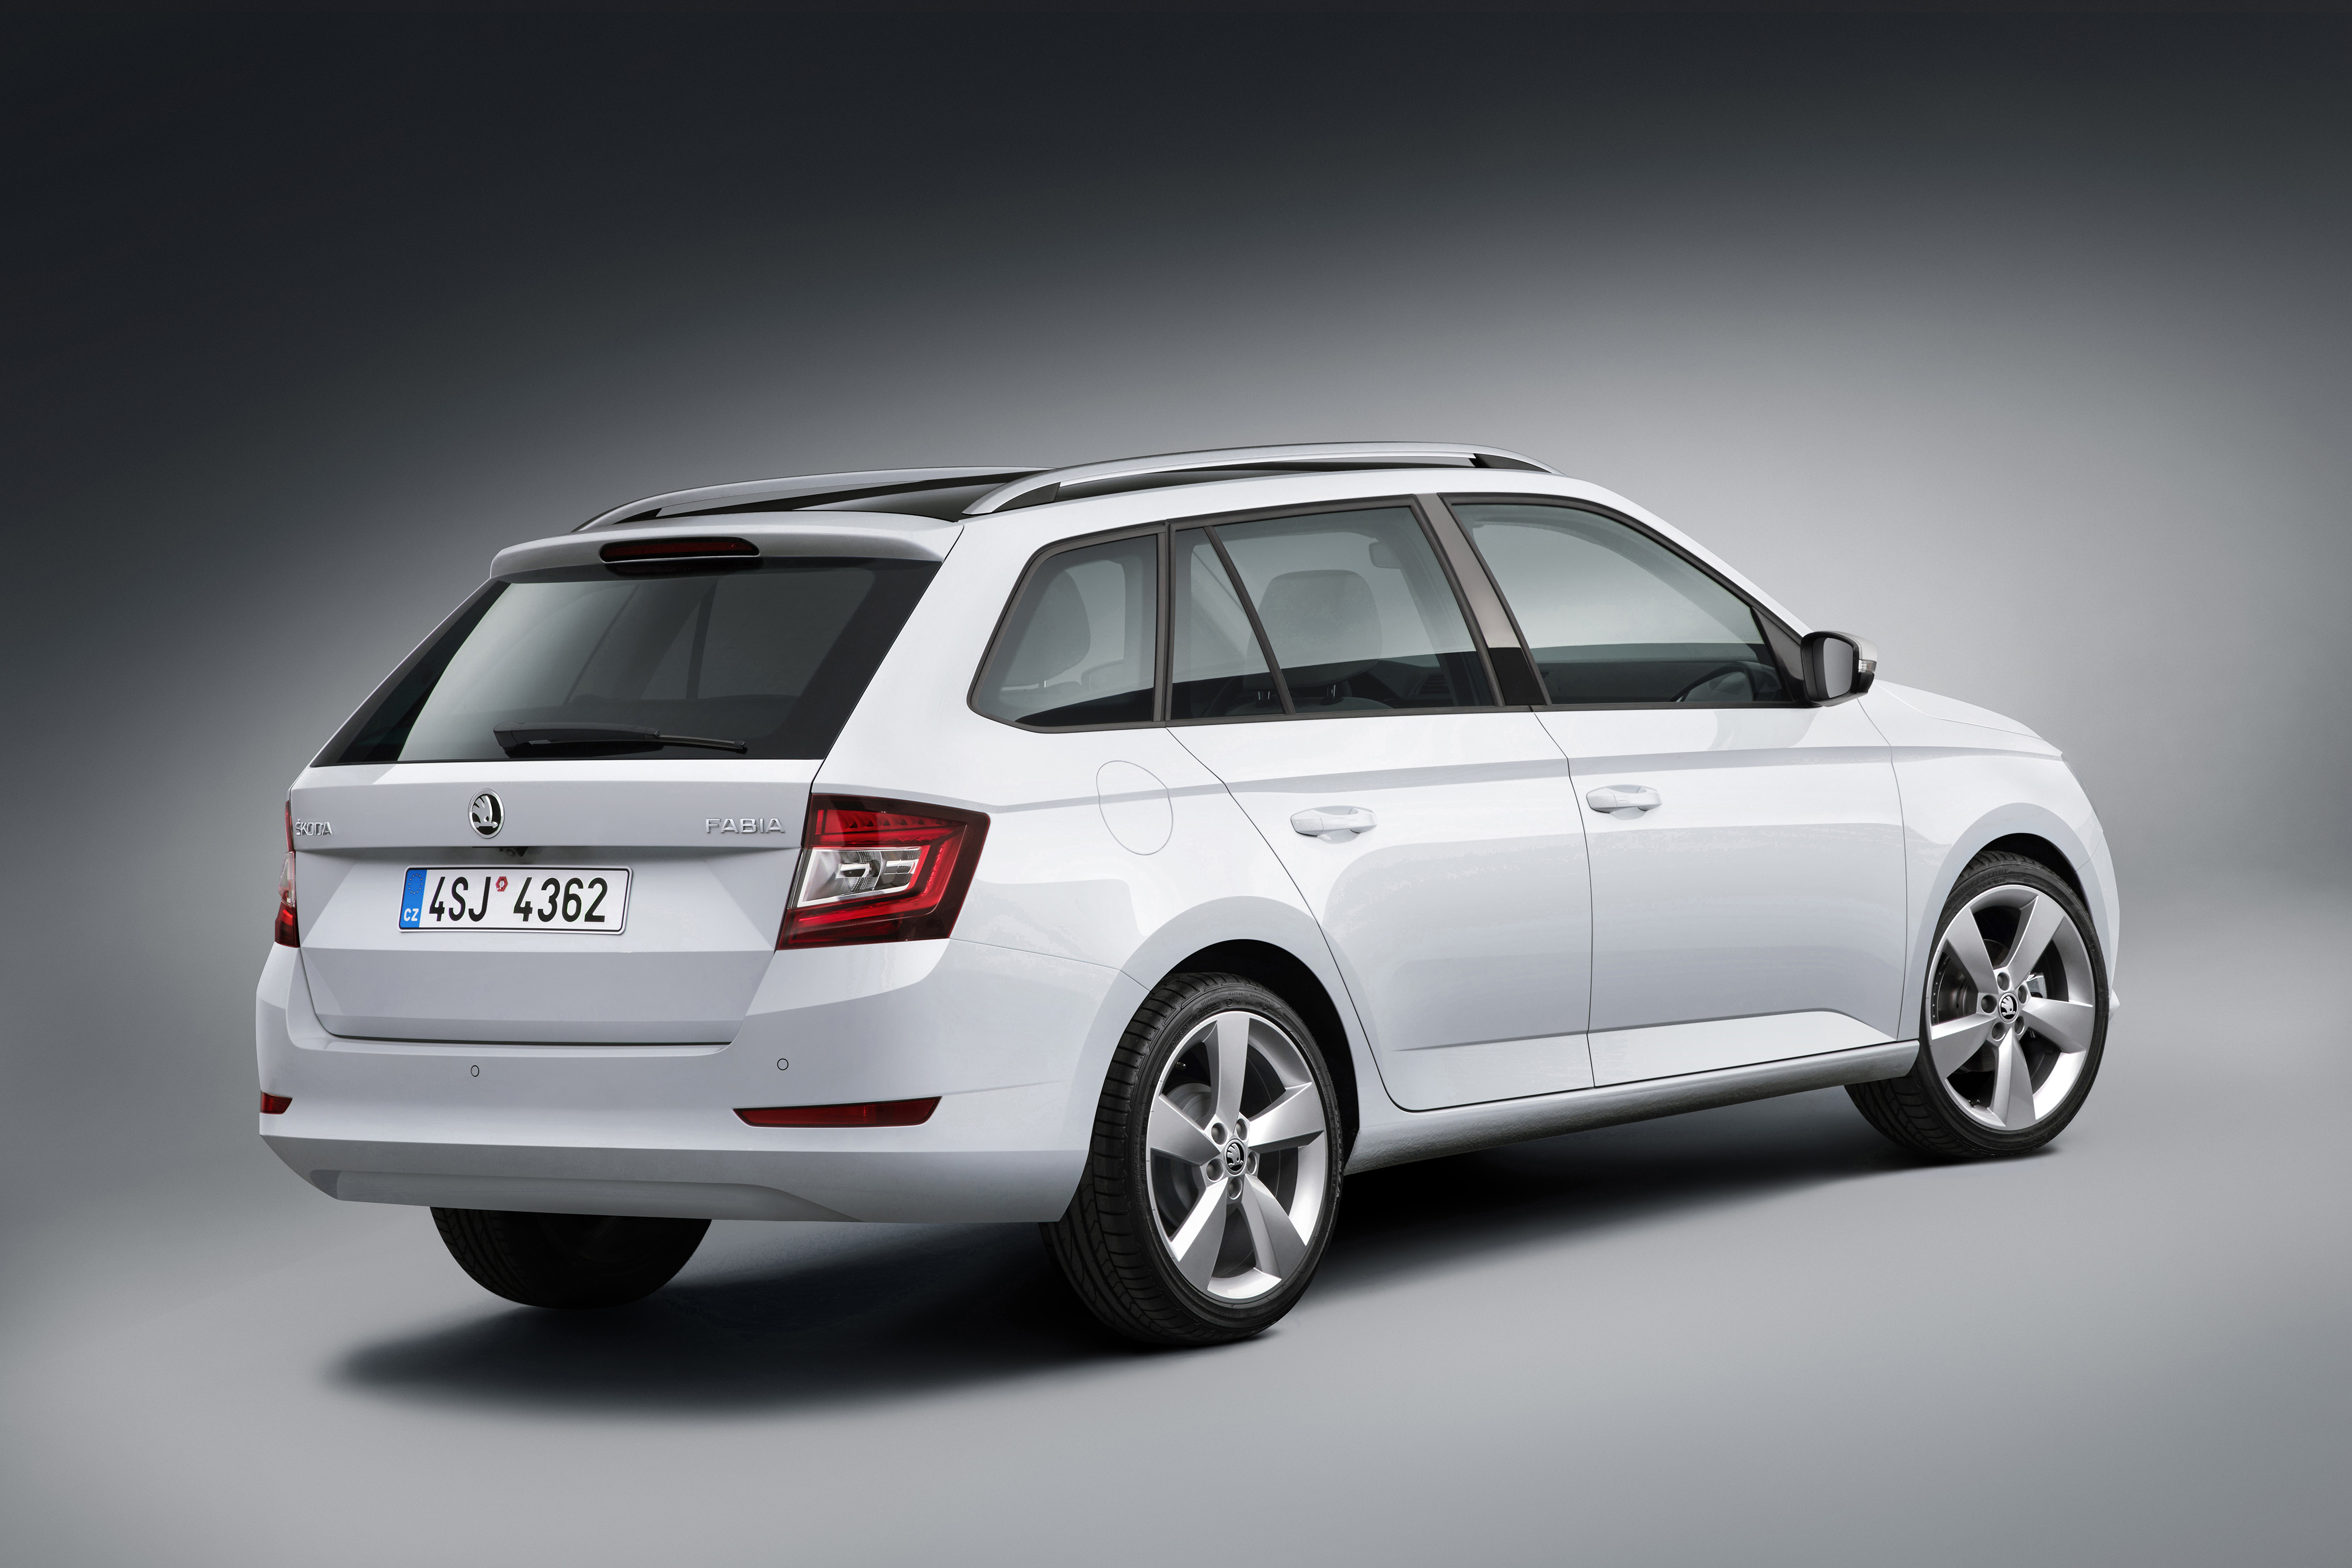 The Skoda Fabia A Brushed Up Design And New Technology